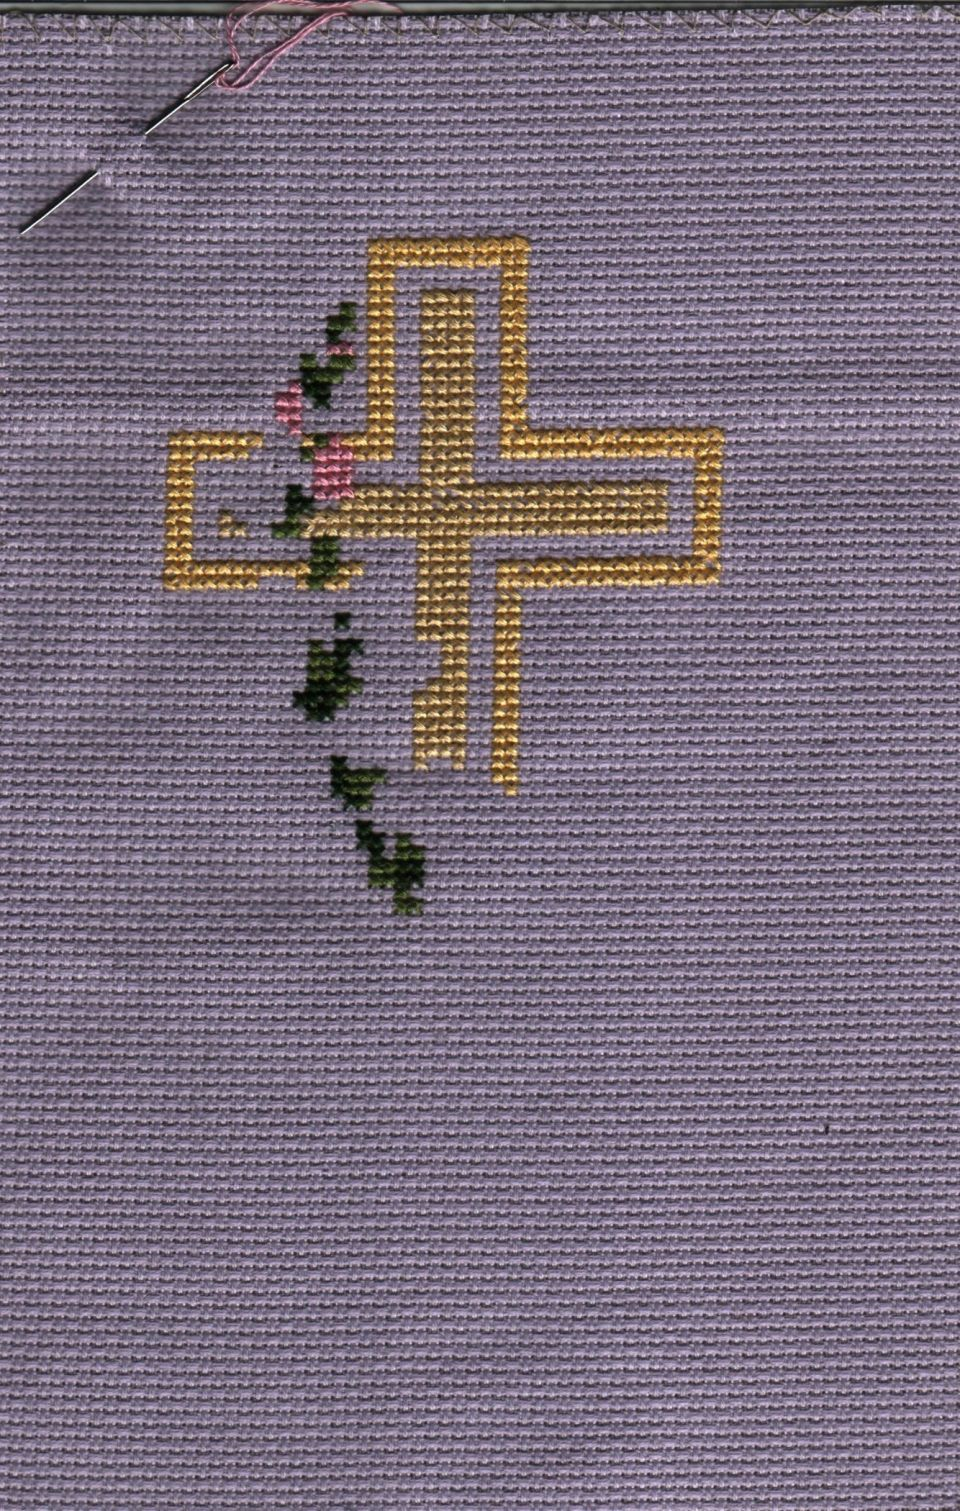 Only 3 weeks before Easter...put together this quick stitchResurrection From Sam Hawkins Sixteen Inspirationson 14 count purple aida using DMC floss